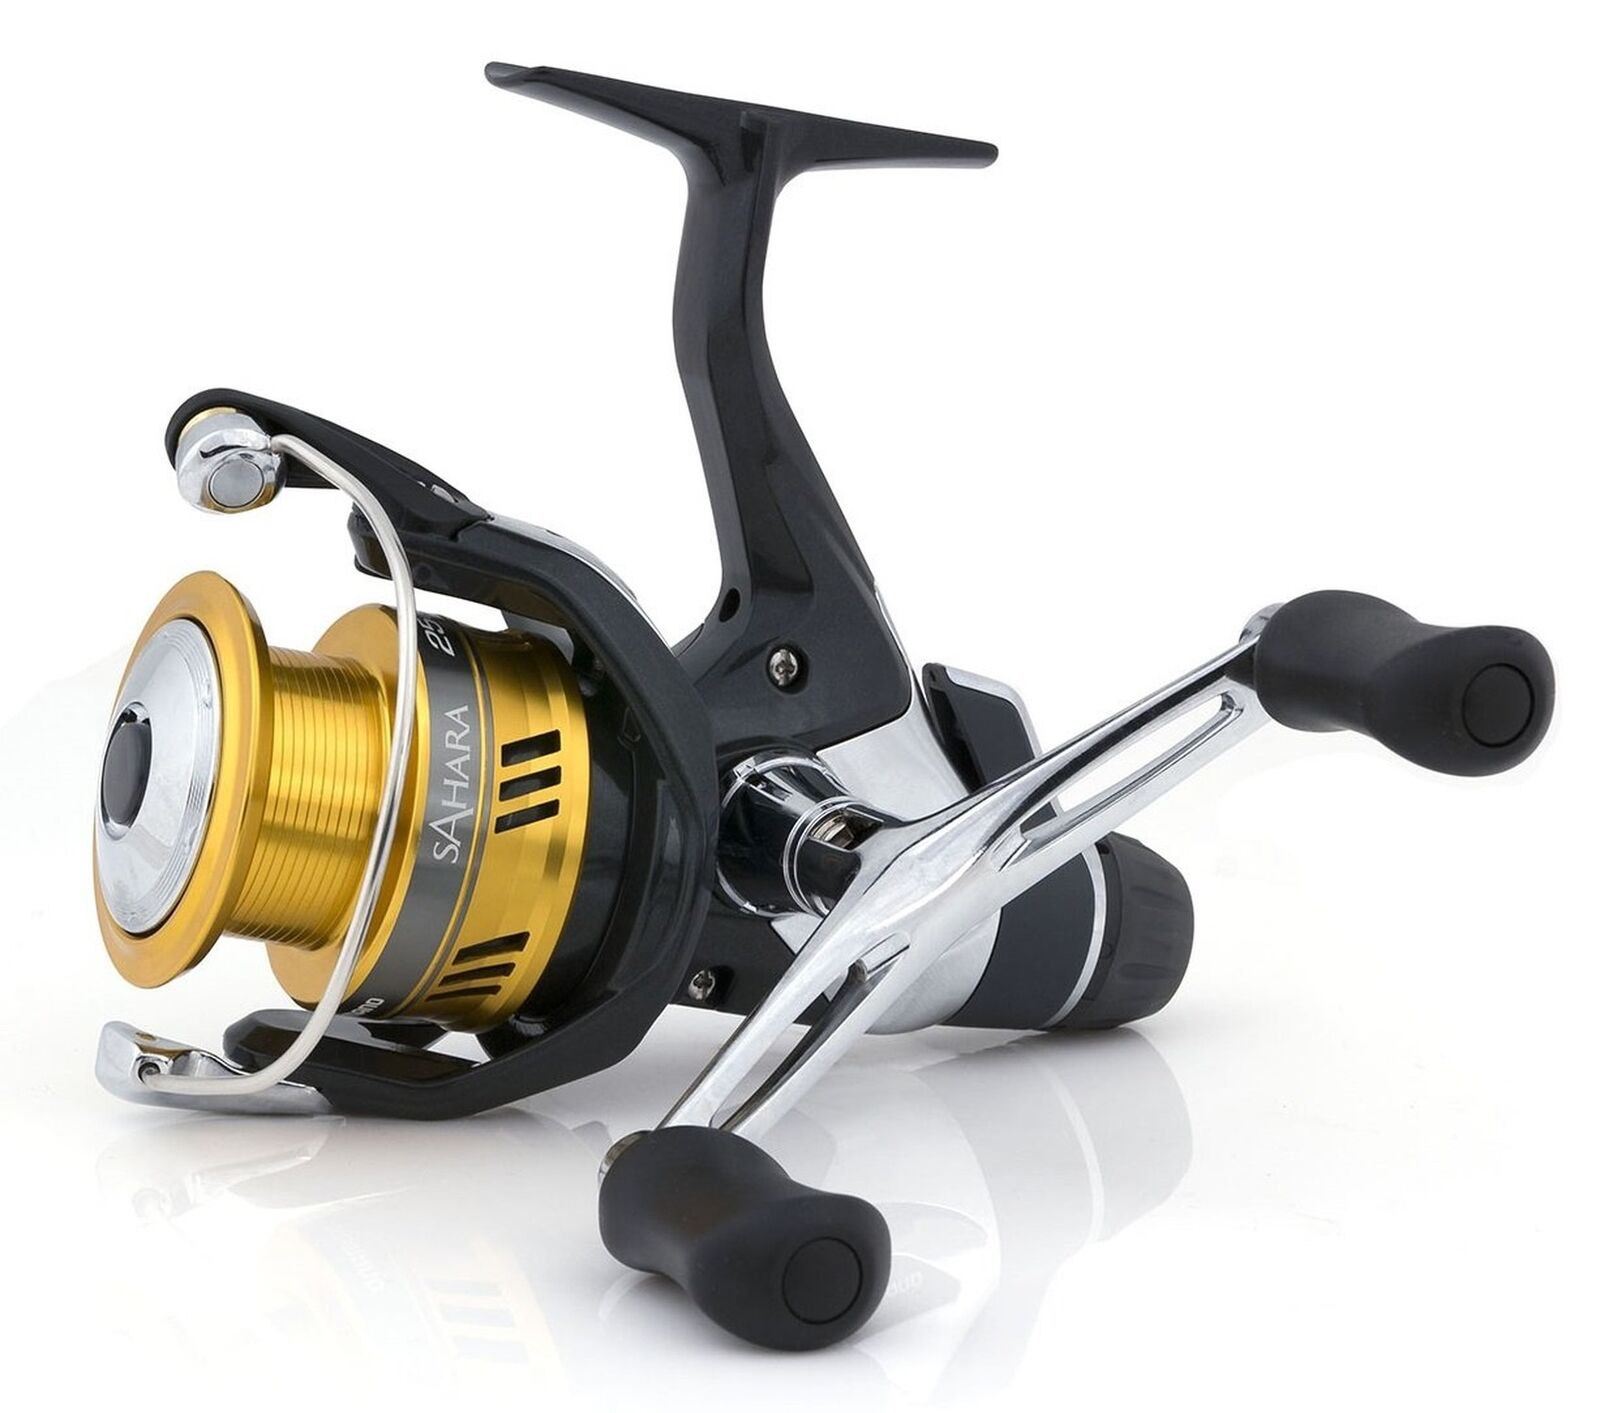 Shimano Sahara  2500 DH R, Rear Drag Spinning Reel Double Handle, SH2500DHR  get the latest